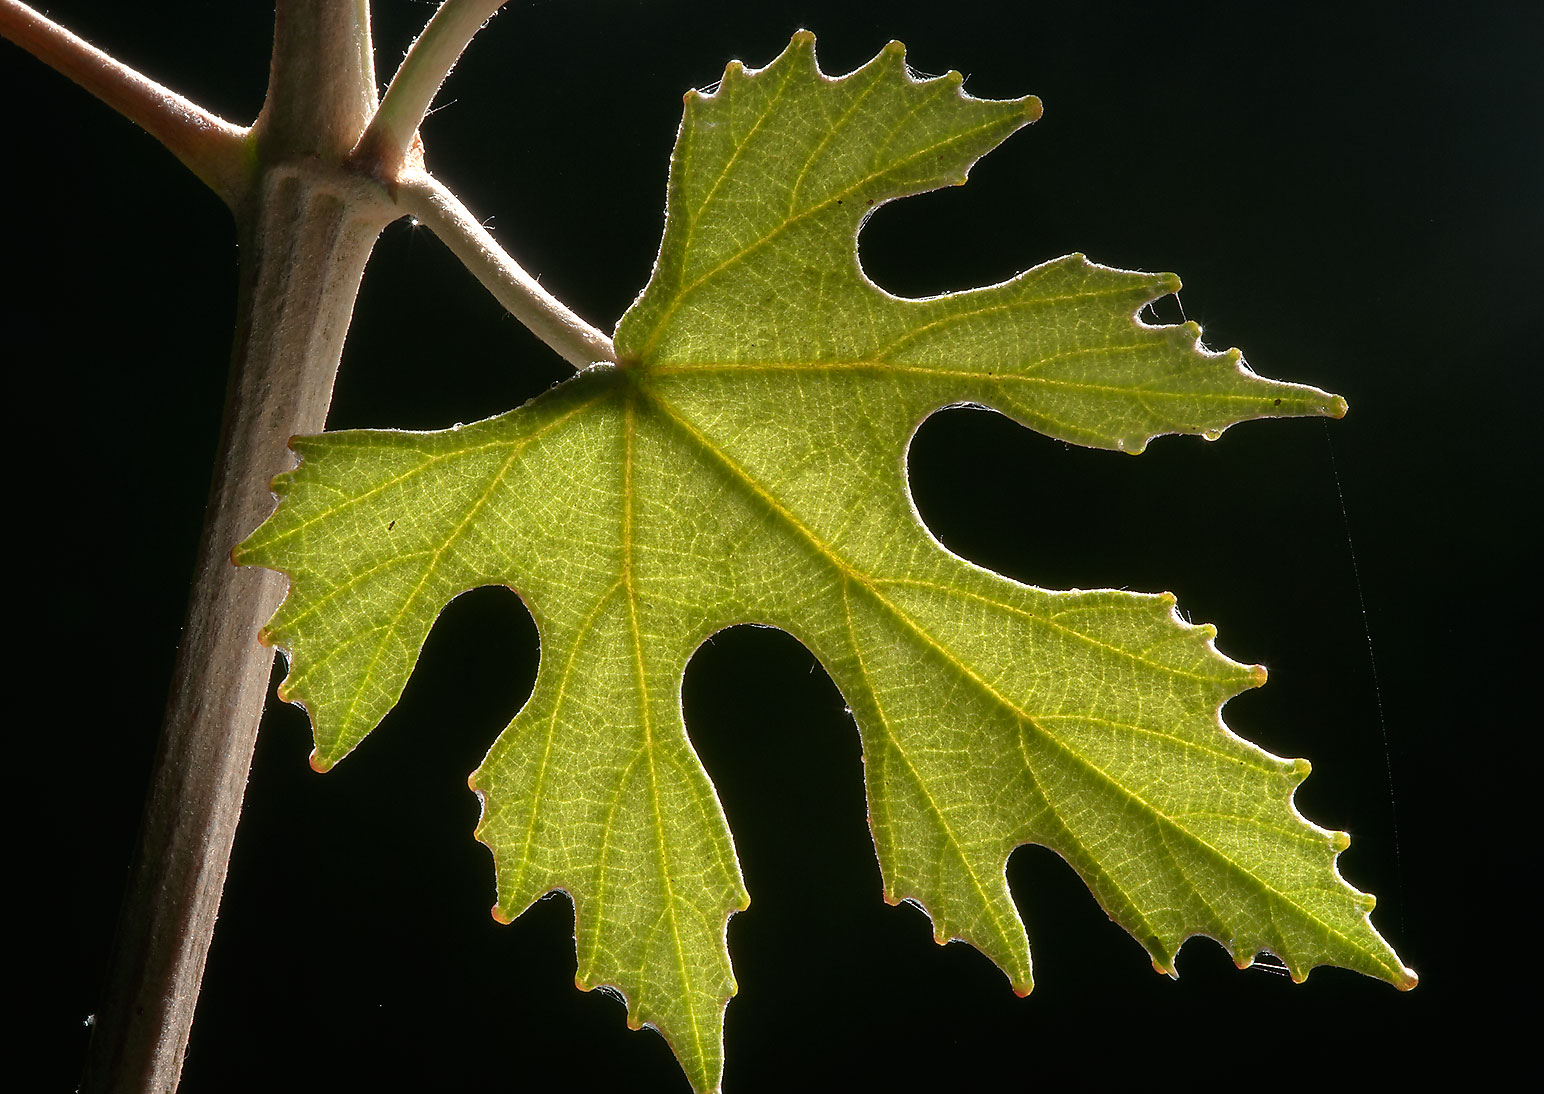 Leaf of mustang grape (Vitis mustangensis) in Lick Creek Park. College Station, Texas